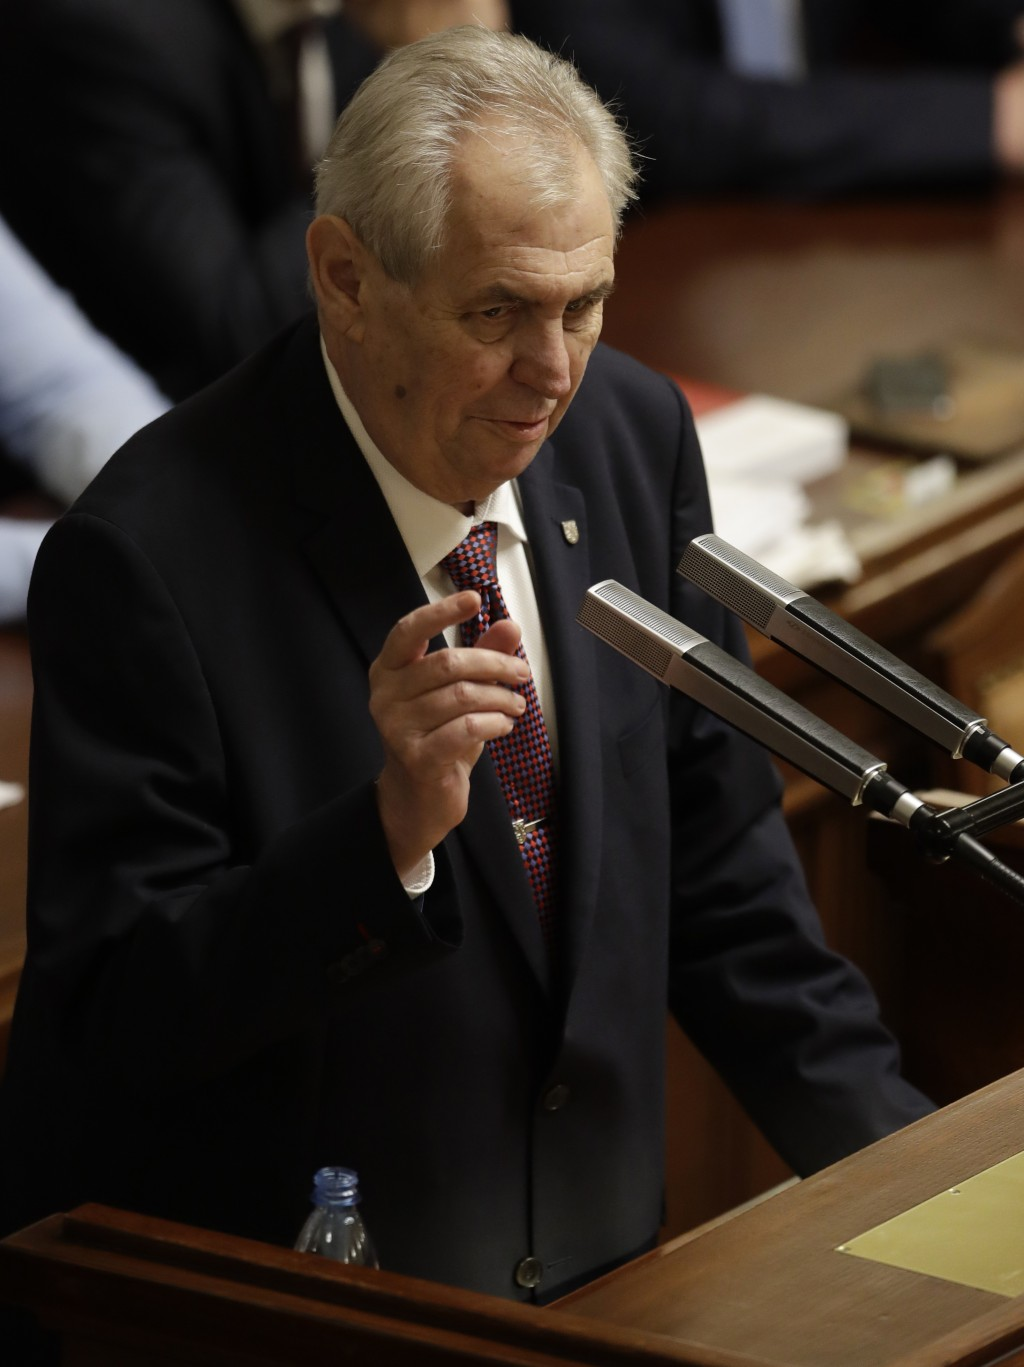 FILE- In this file picture taken on Wednesday, Jan. 10, 2018, Czech Republic's President Milos Zeman, makes a speech during a Parliament session in Pr